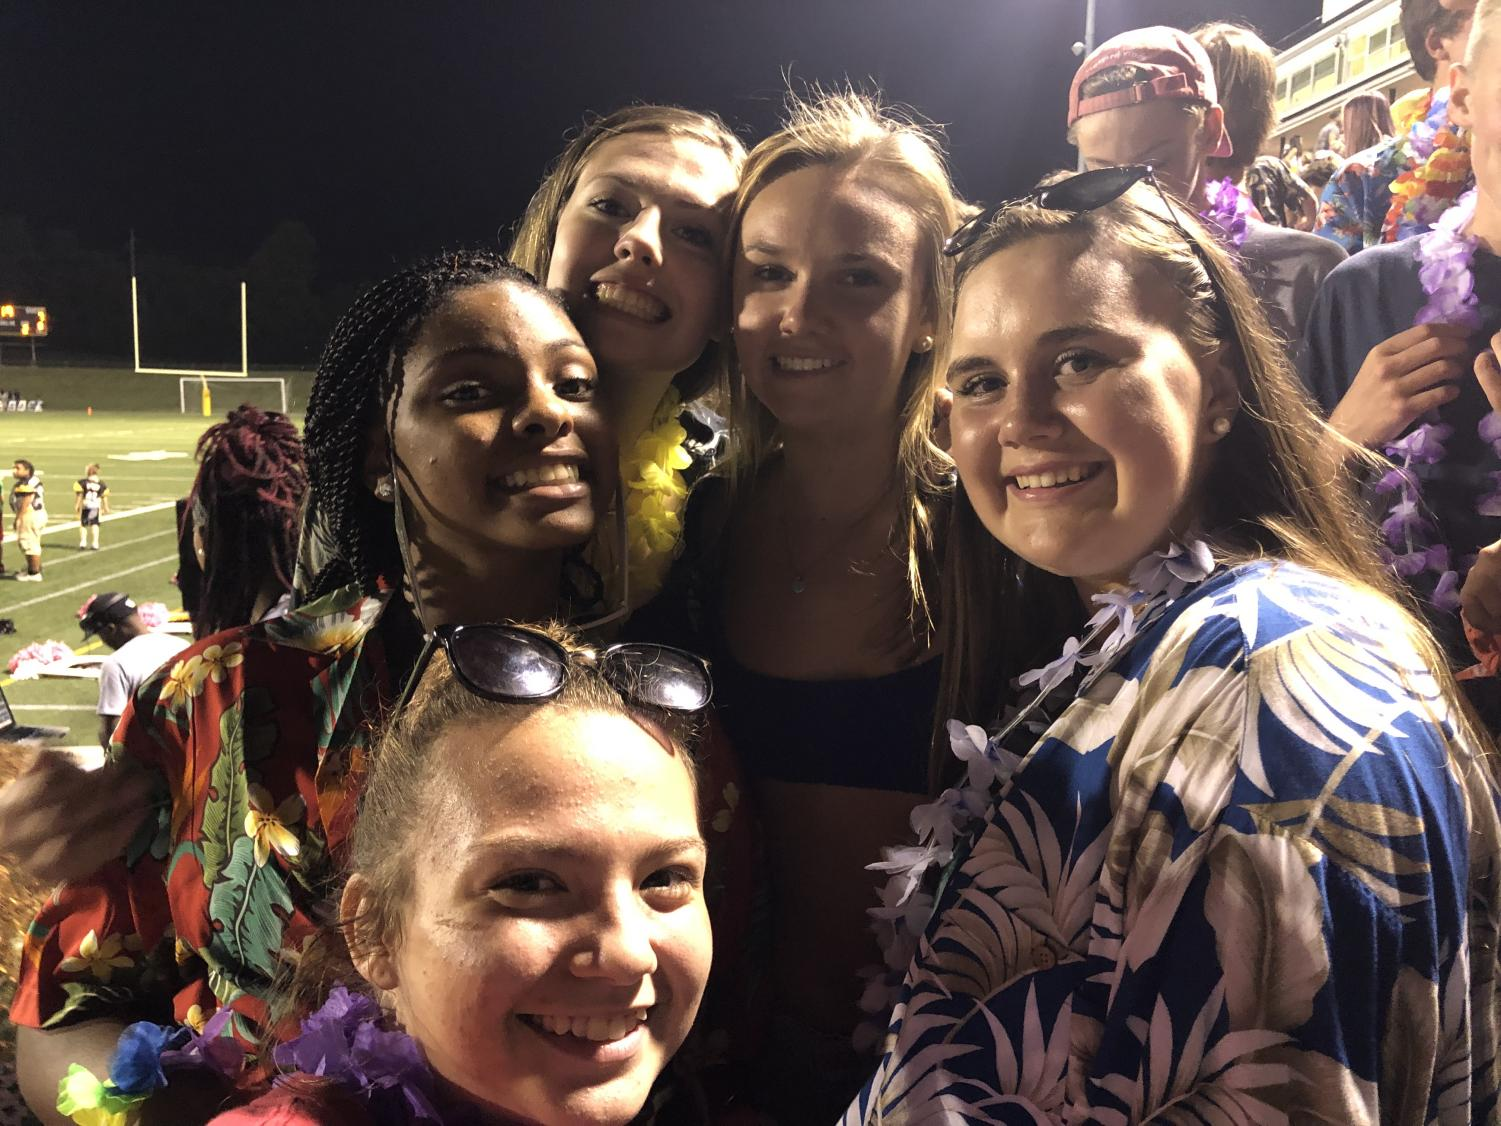 Excited students at Friday night's football game.